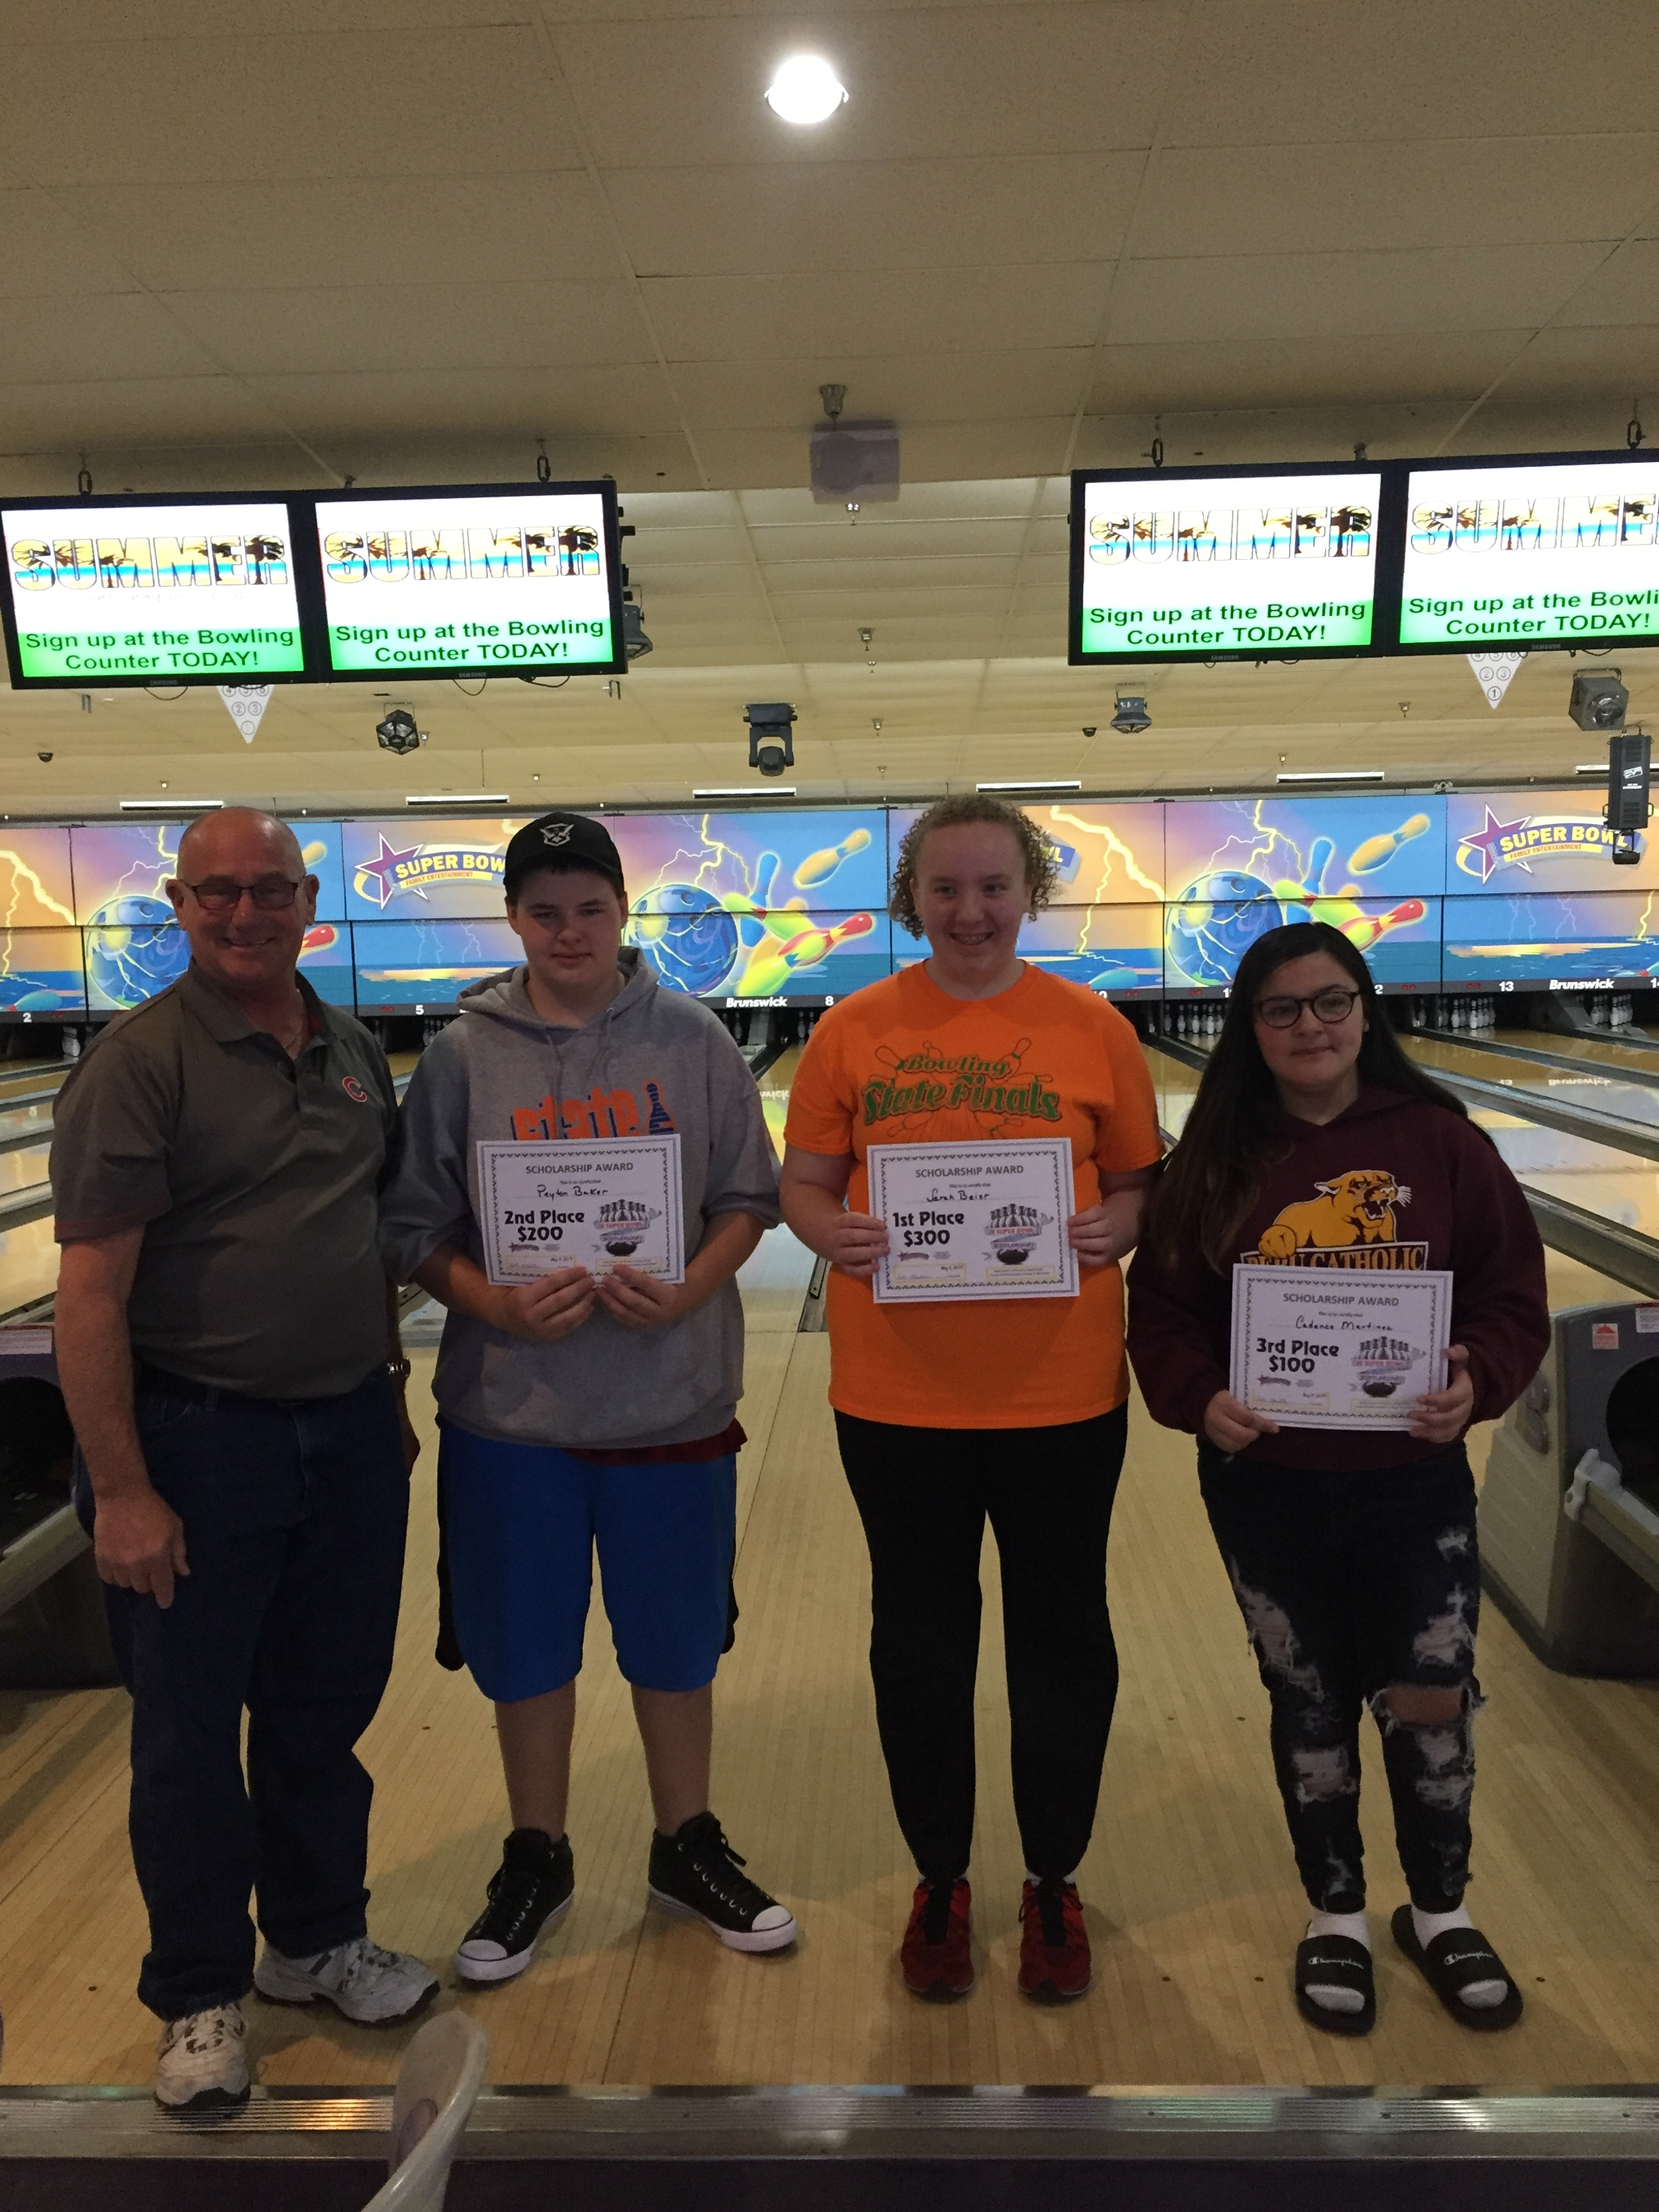 (L - R) Bob Stubler, Age 12 and over winners - Peyton Baker 2nd, Sarah Beier 1st, Cadence Martinez 2nd.